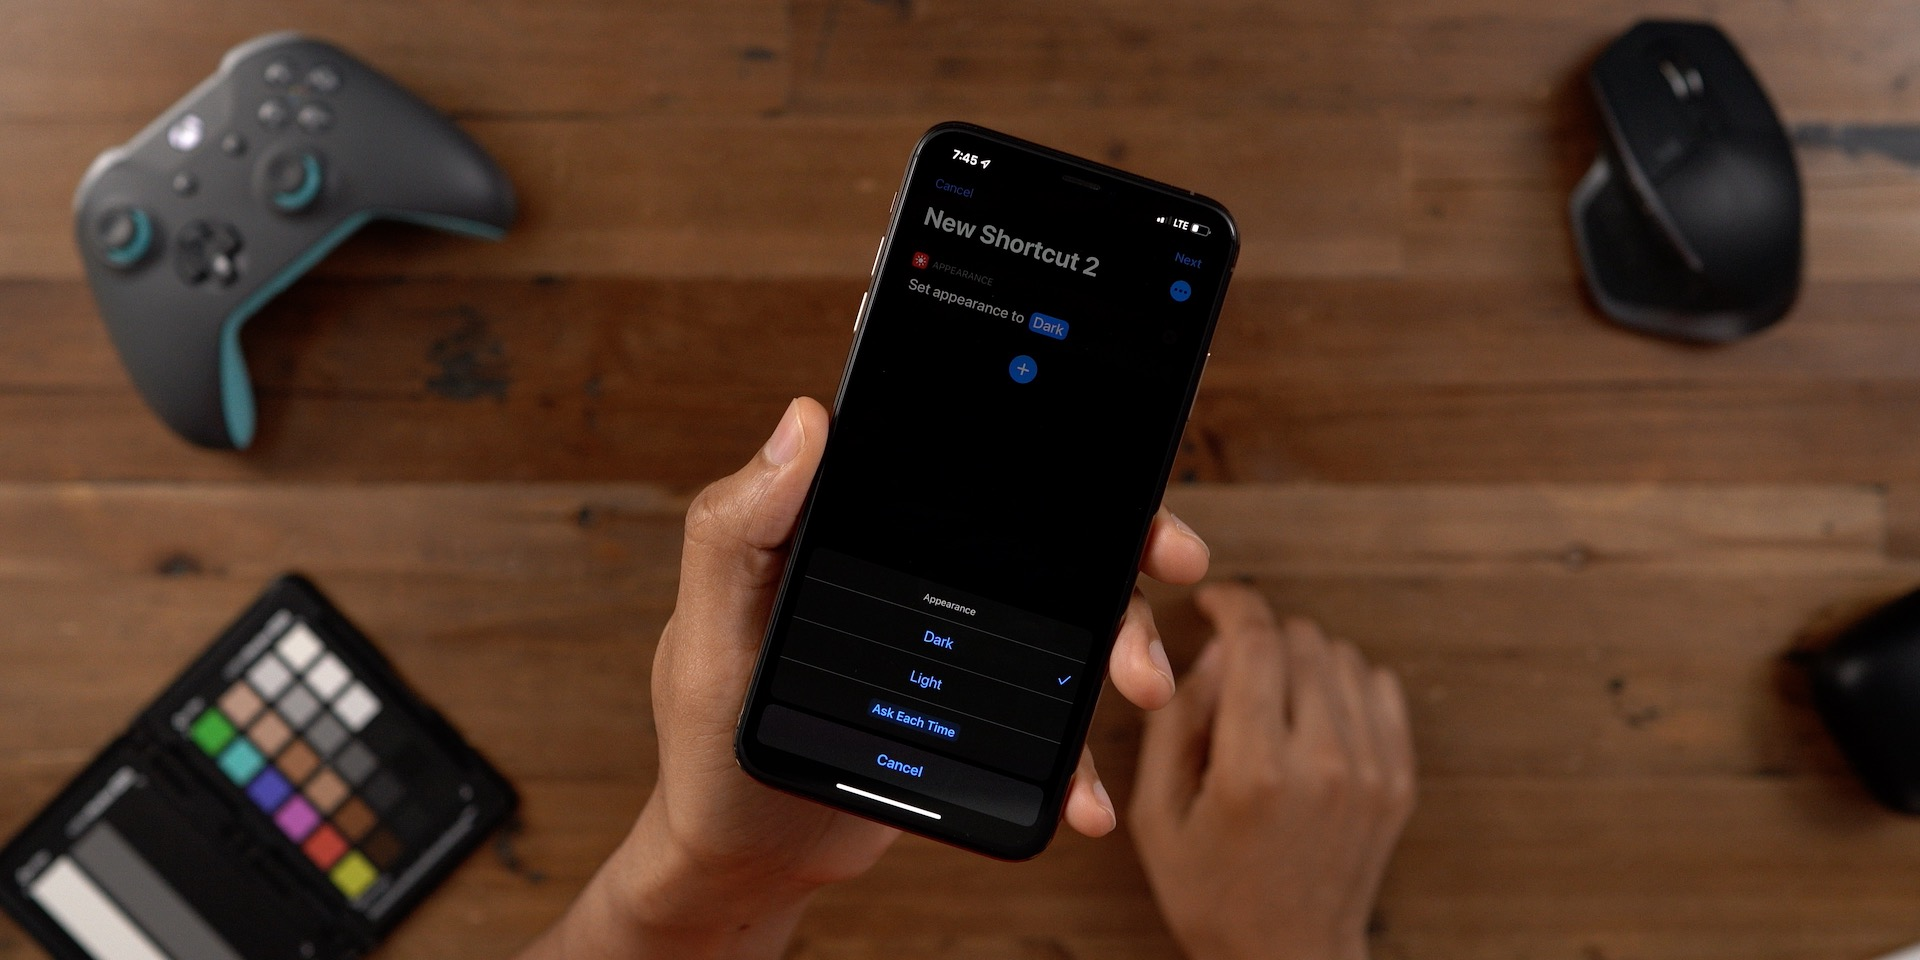 Dark Mode Shortcut Siri iOS 13 beta 2